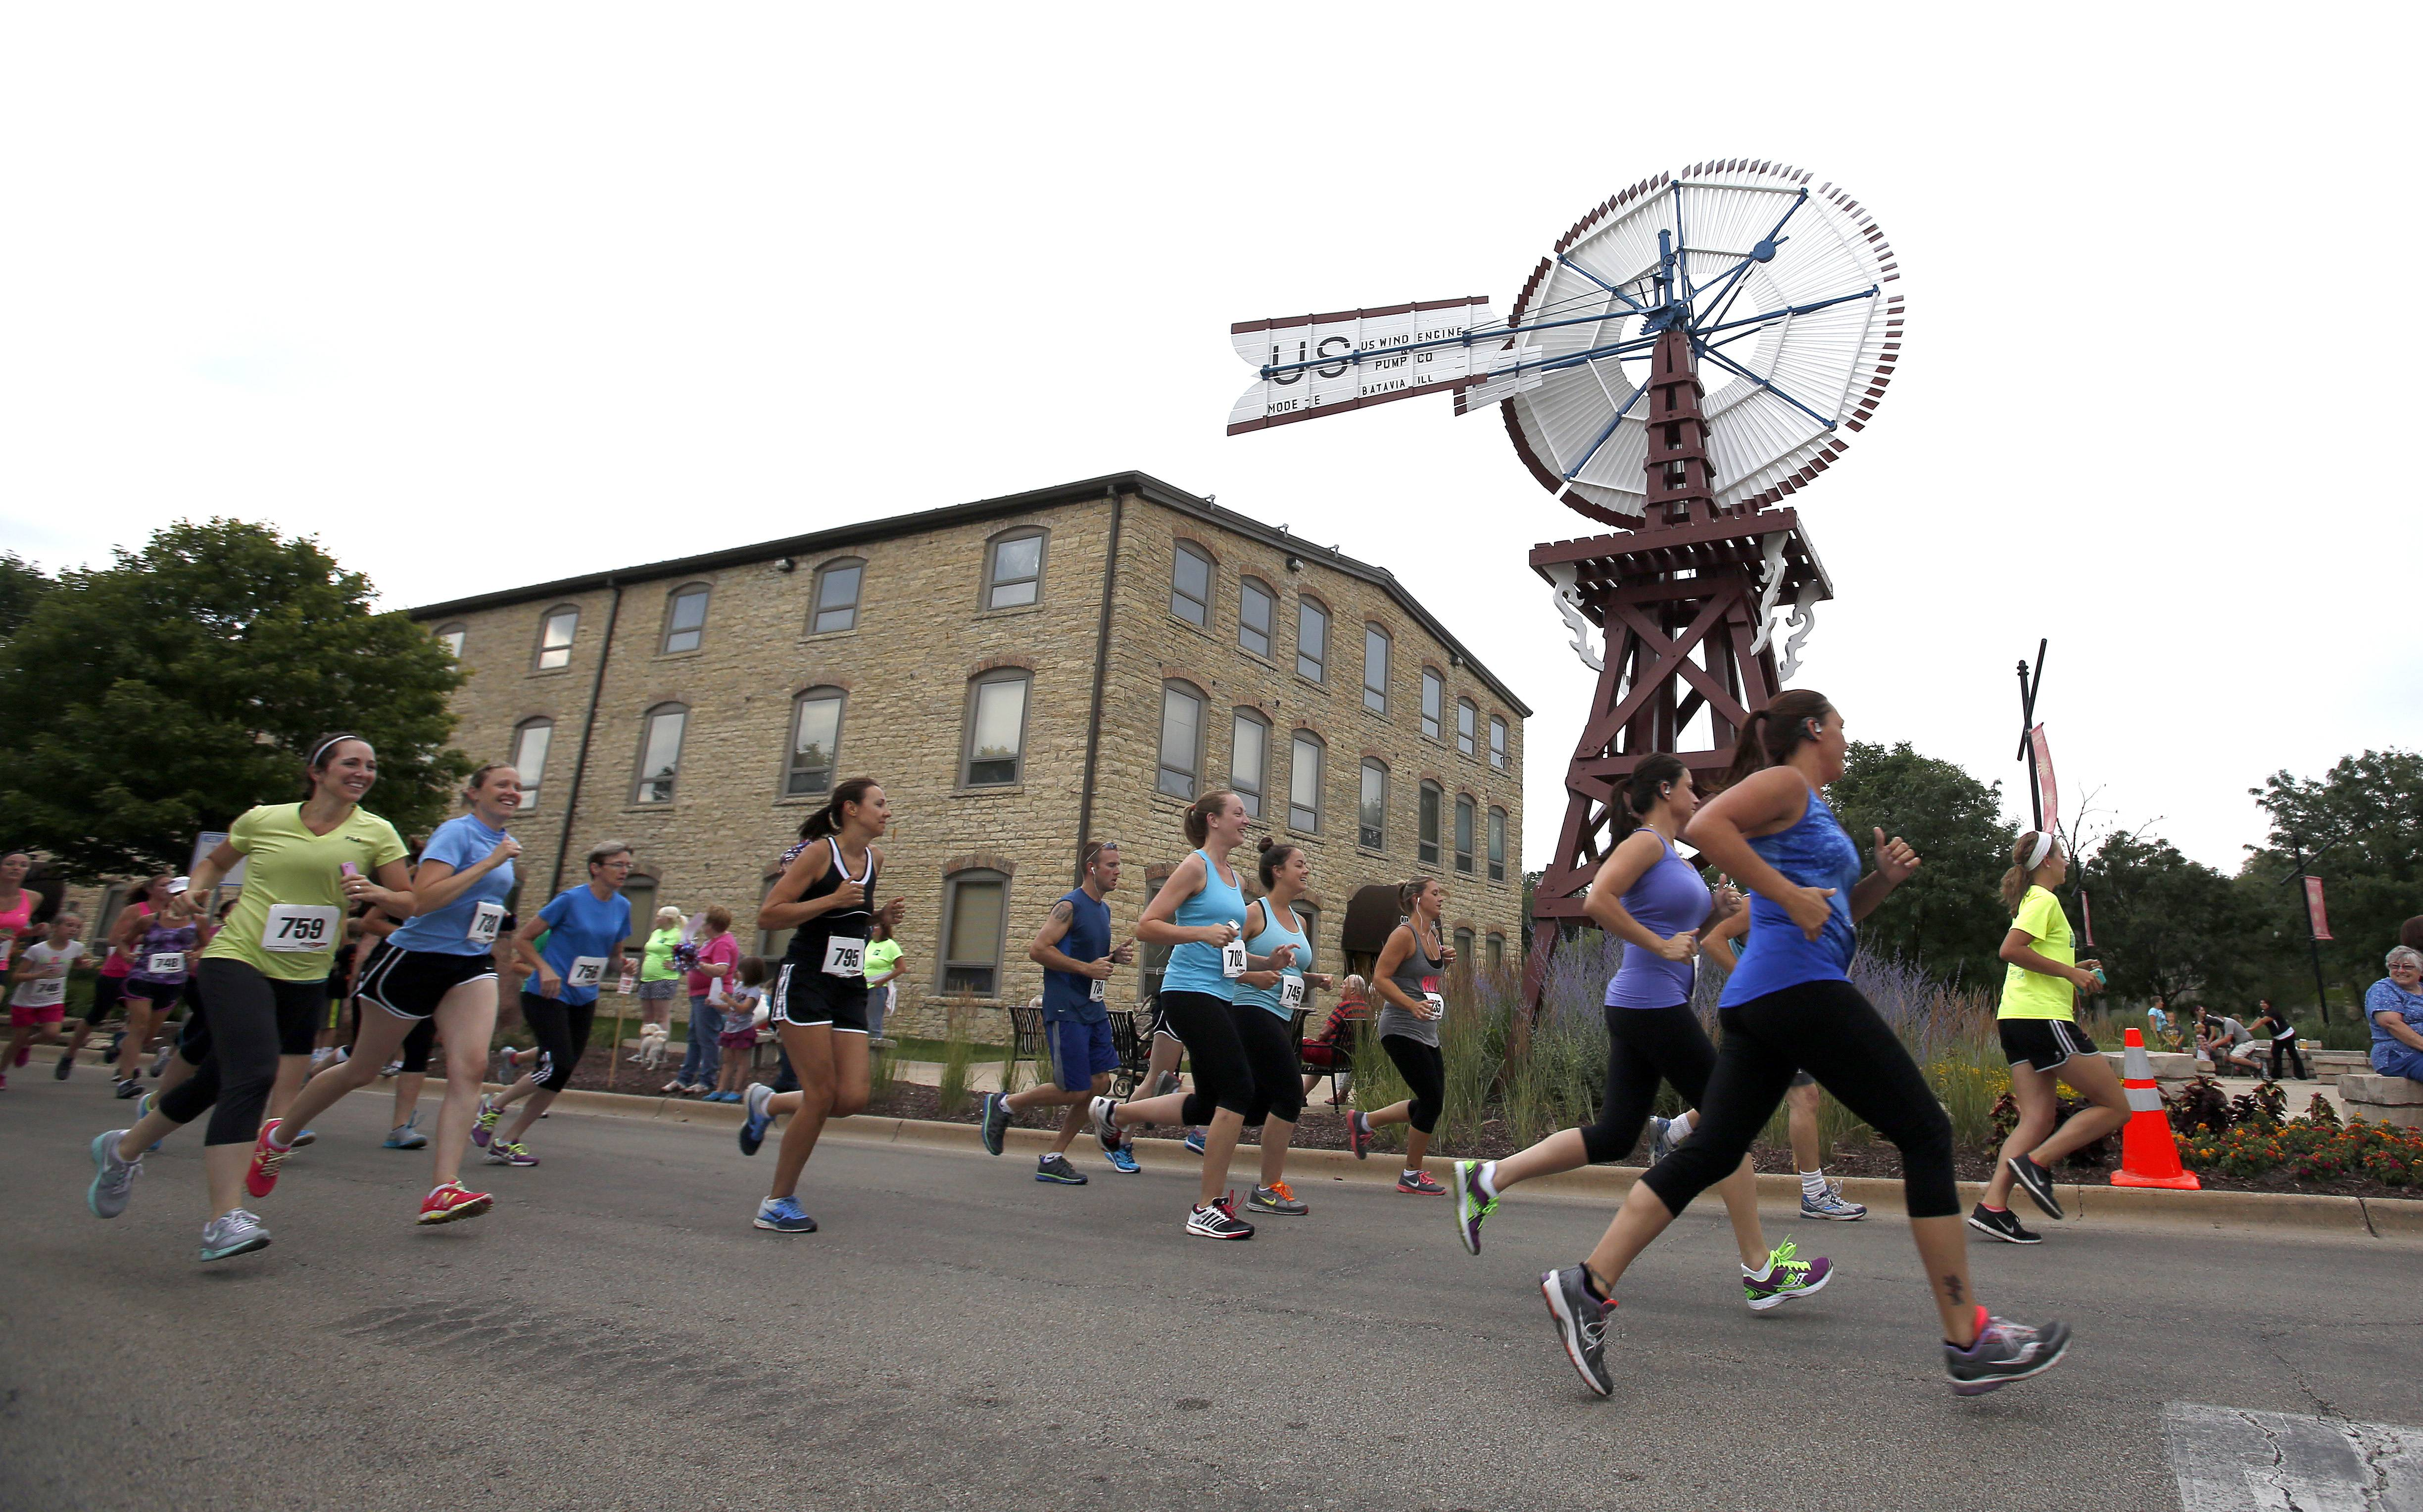 Racers turn the first corner during the Windmill Whirl 5k race Friday at the Windmill City Fest in Batavia. The festival runs through Sunday. Visit windmillcityfest.org for more information.